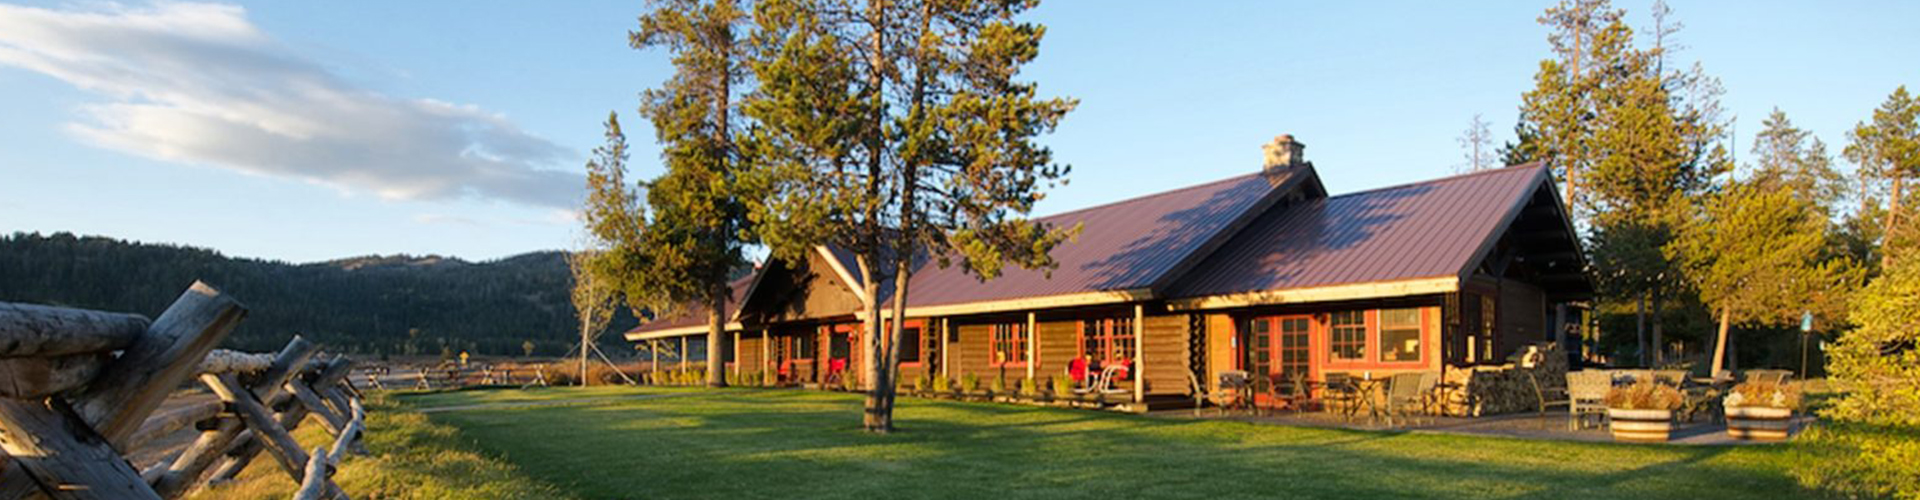 turpin meadow ranch lodge sunset